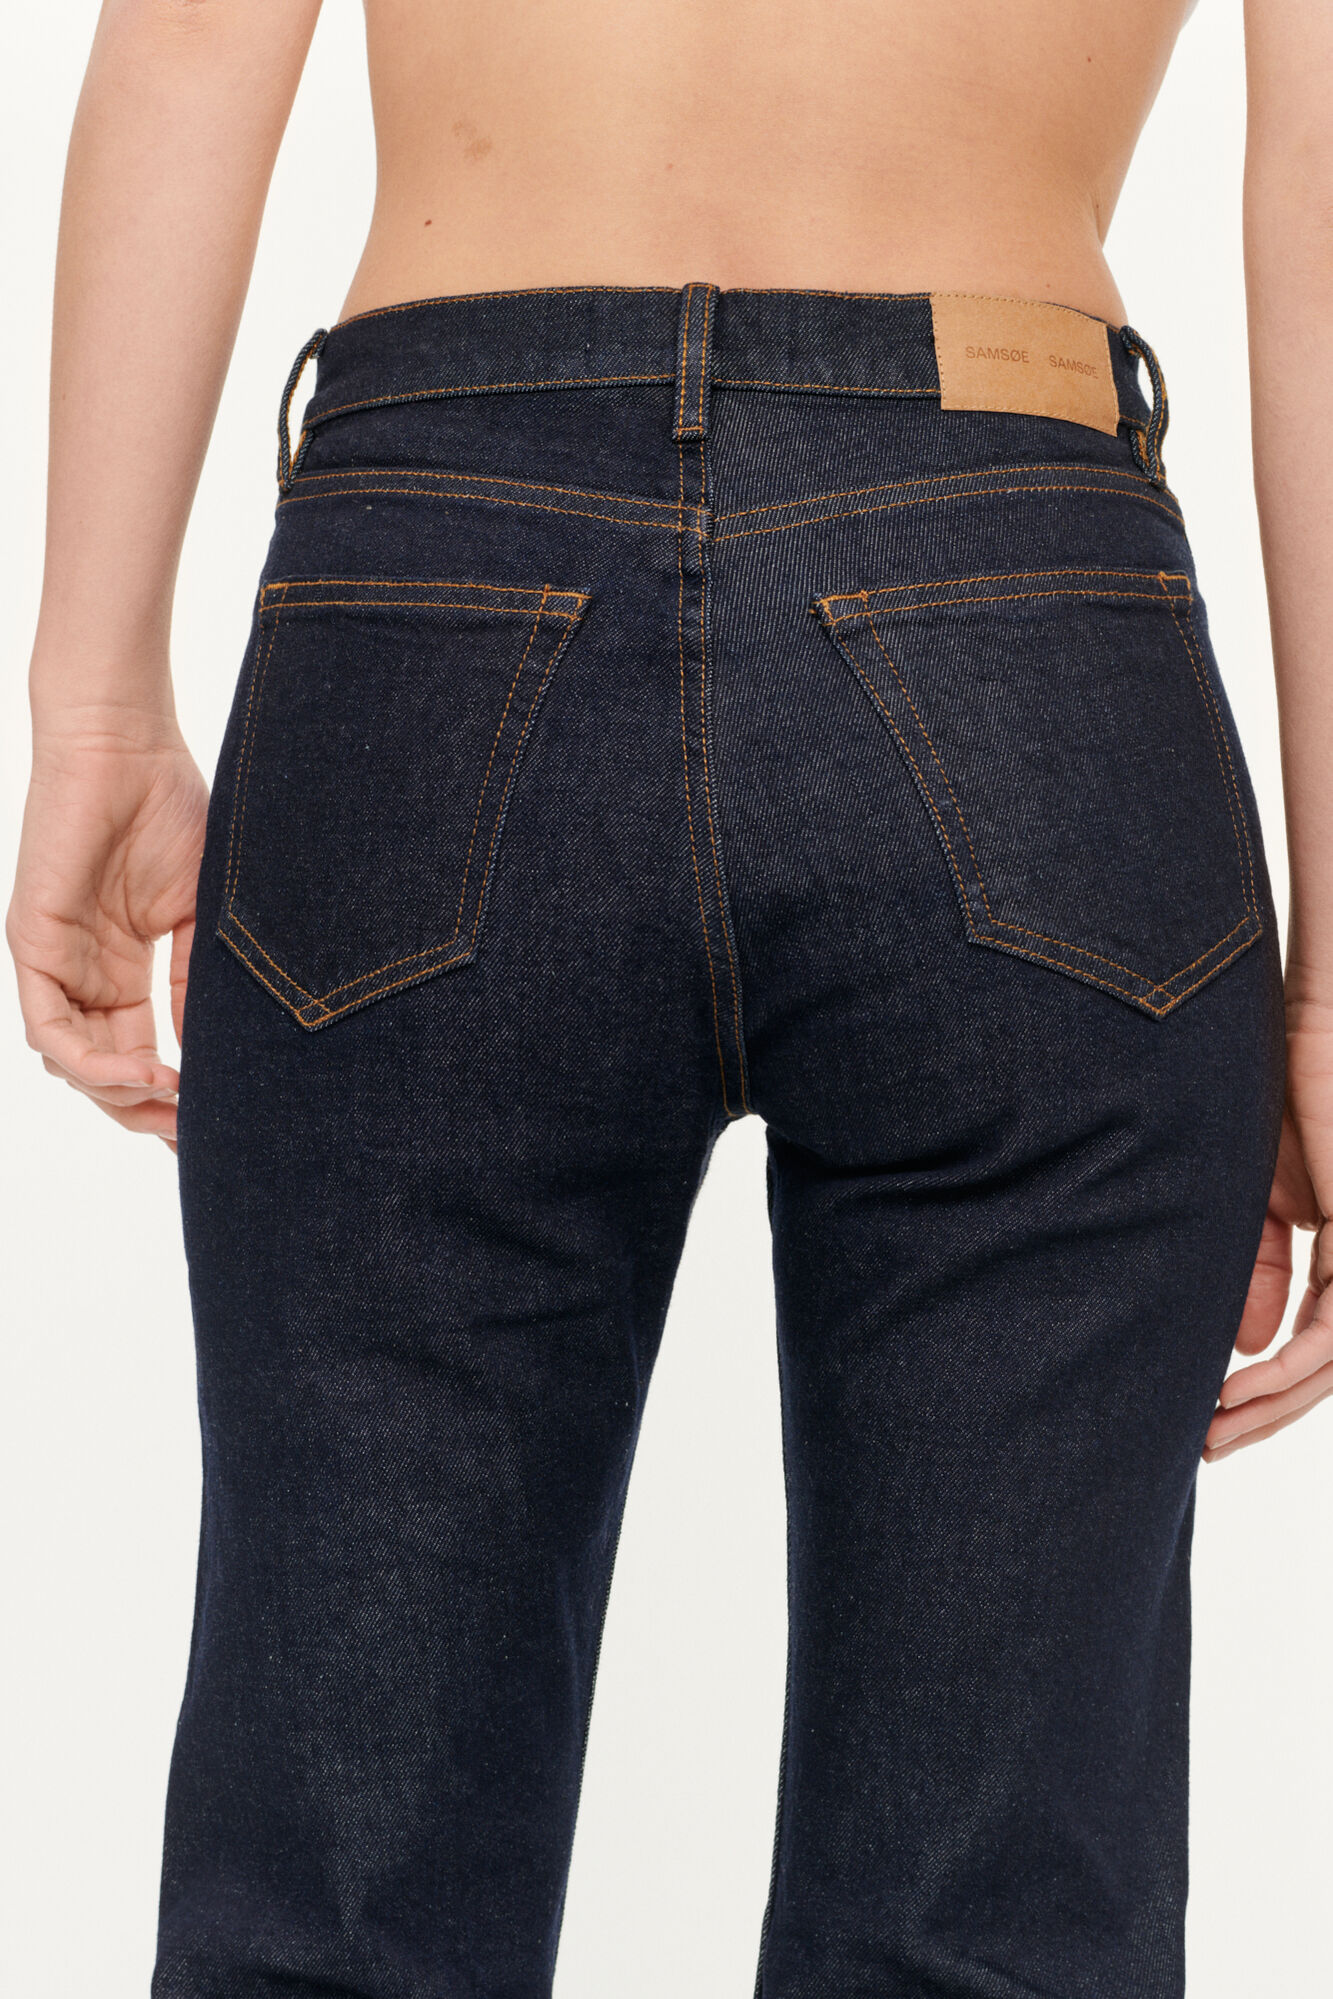 Adelina jeans 10994